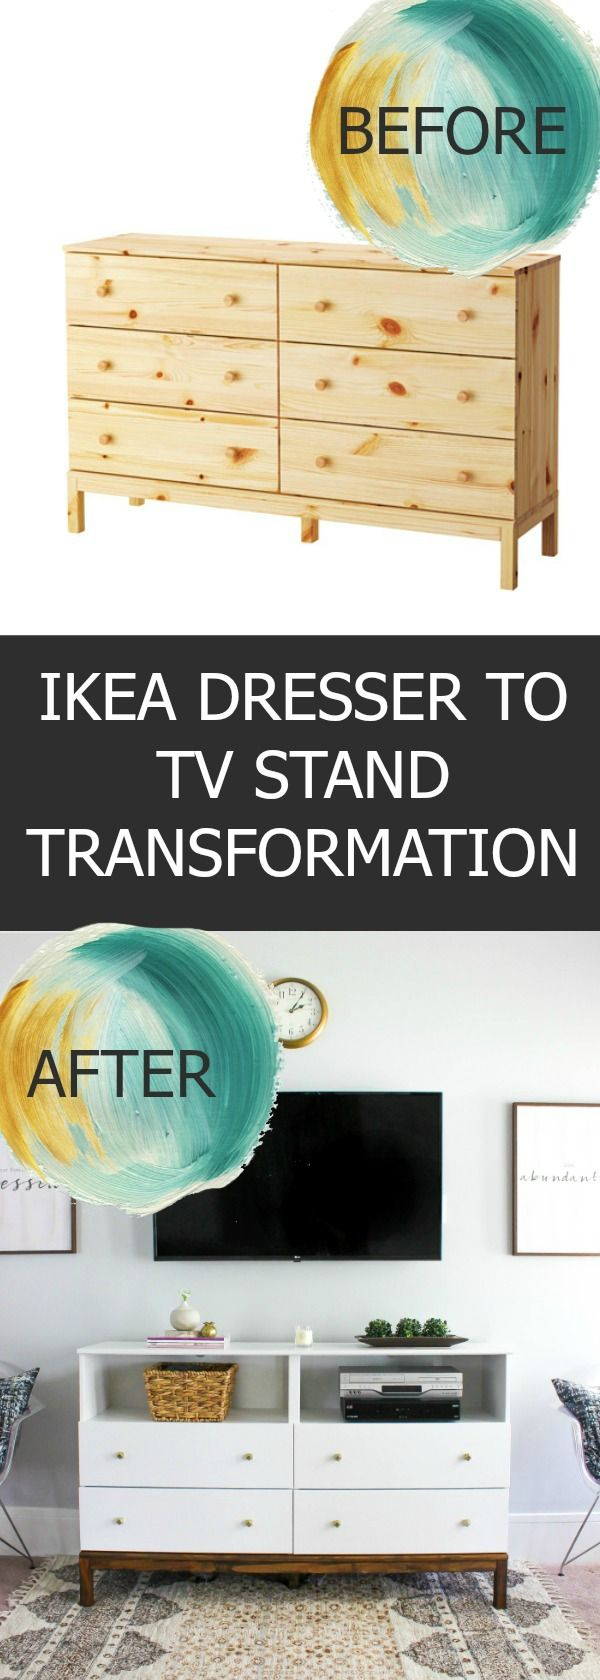 Ikea Dresser To Tv Stand Transformation   Decorating Fun   Ikea Throughout Bale 82 Inch Tv Stands (View 17 of 30)